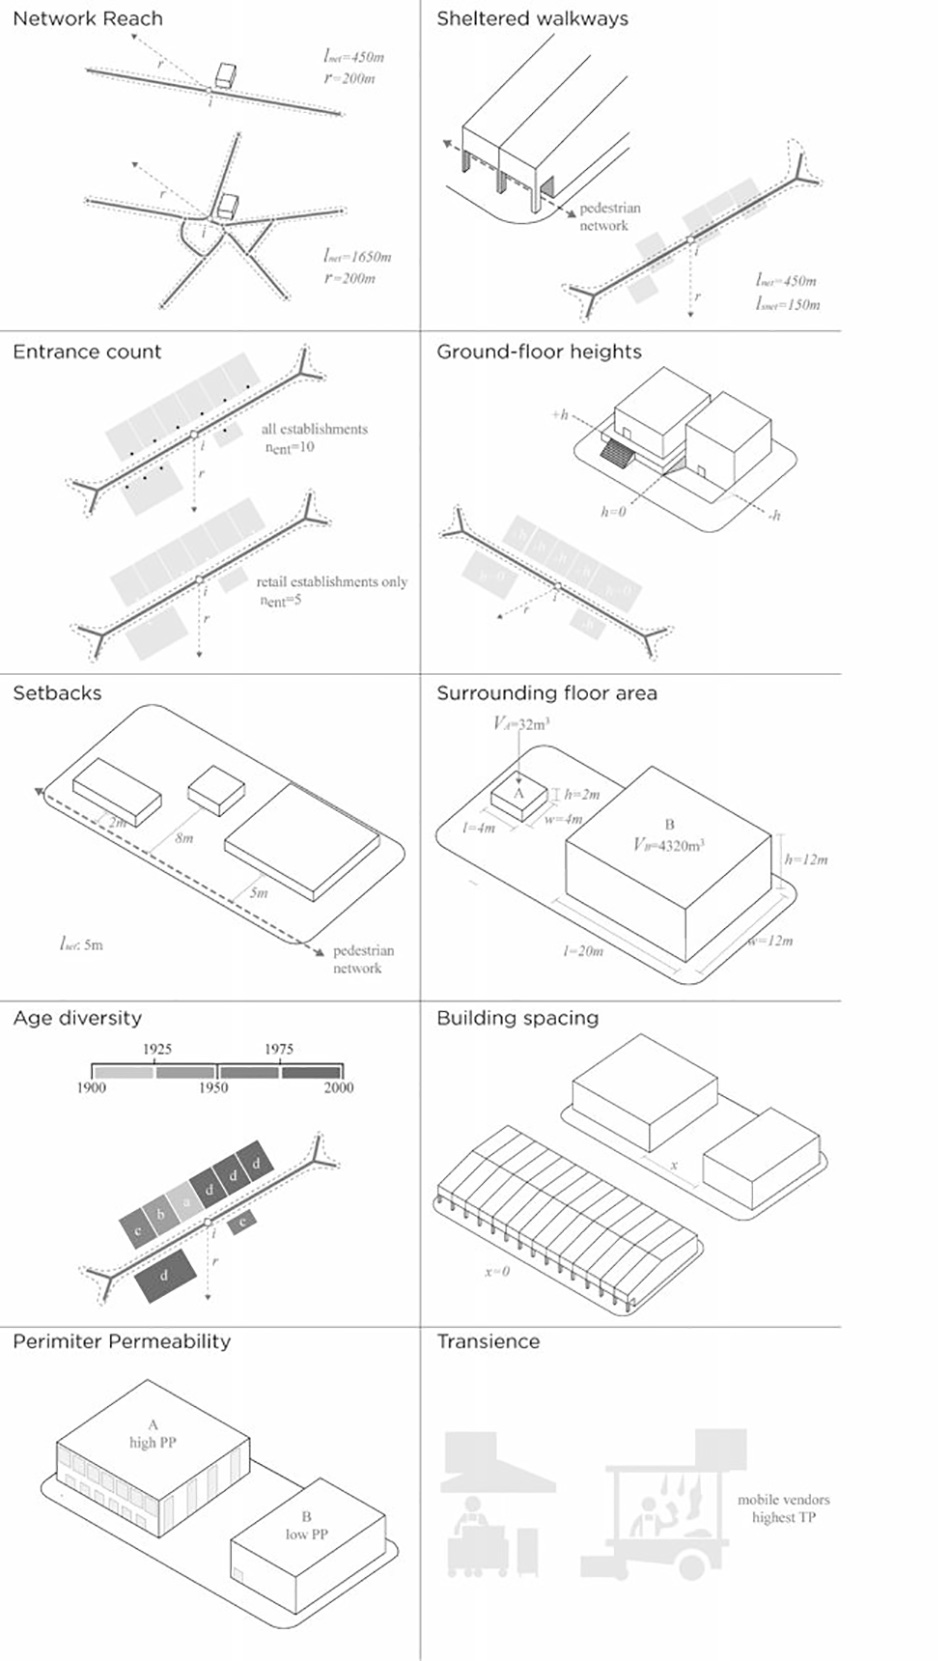 Evidence Based Design Journal Urban Network Analysis Diagram Of A Architecture In Multistory Building Qualities That Affect Intensity And Levels Interaction